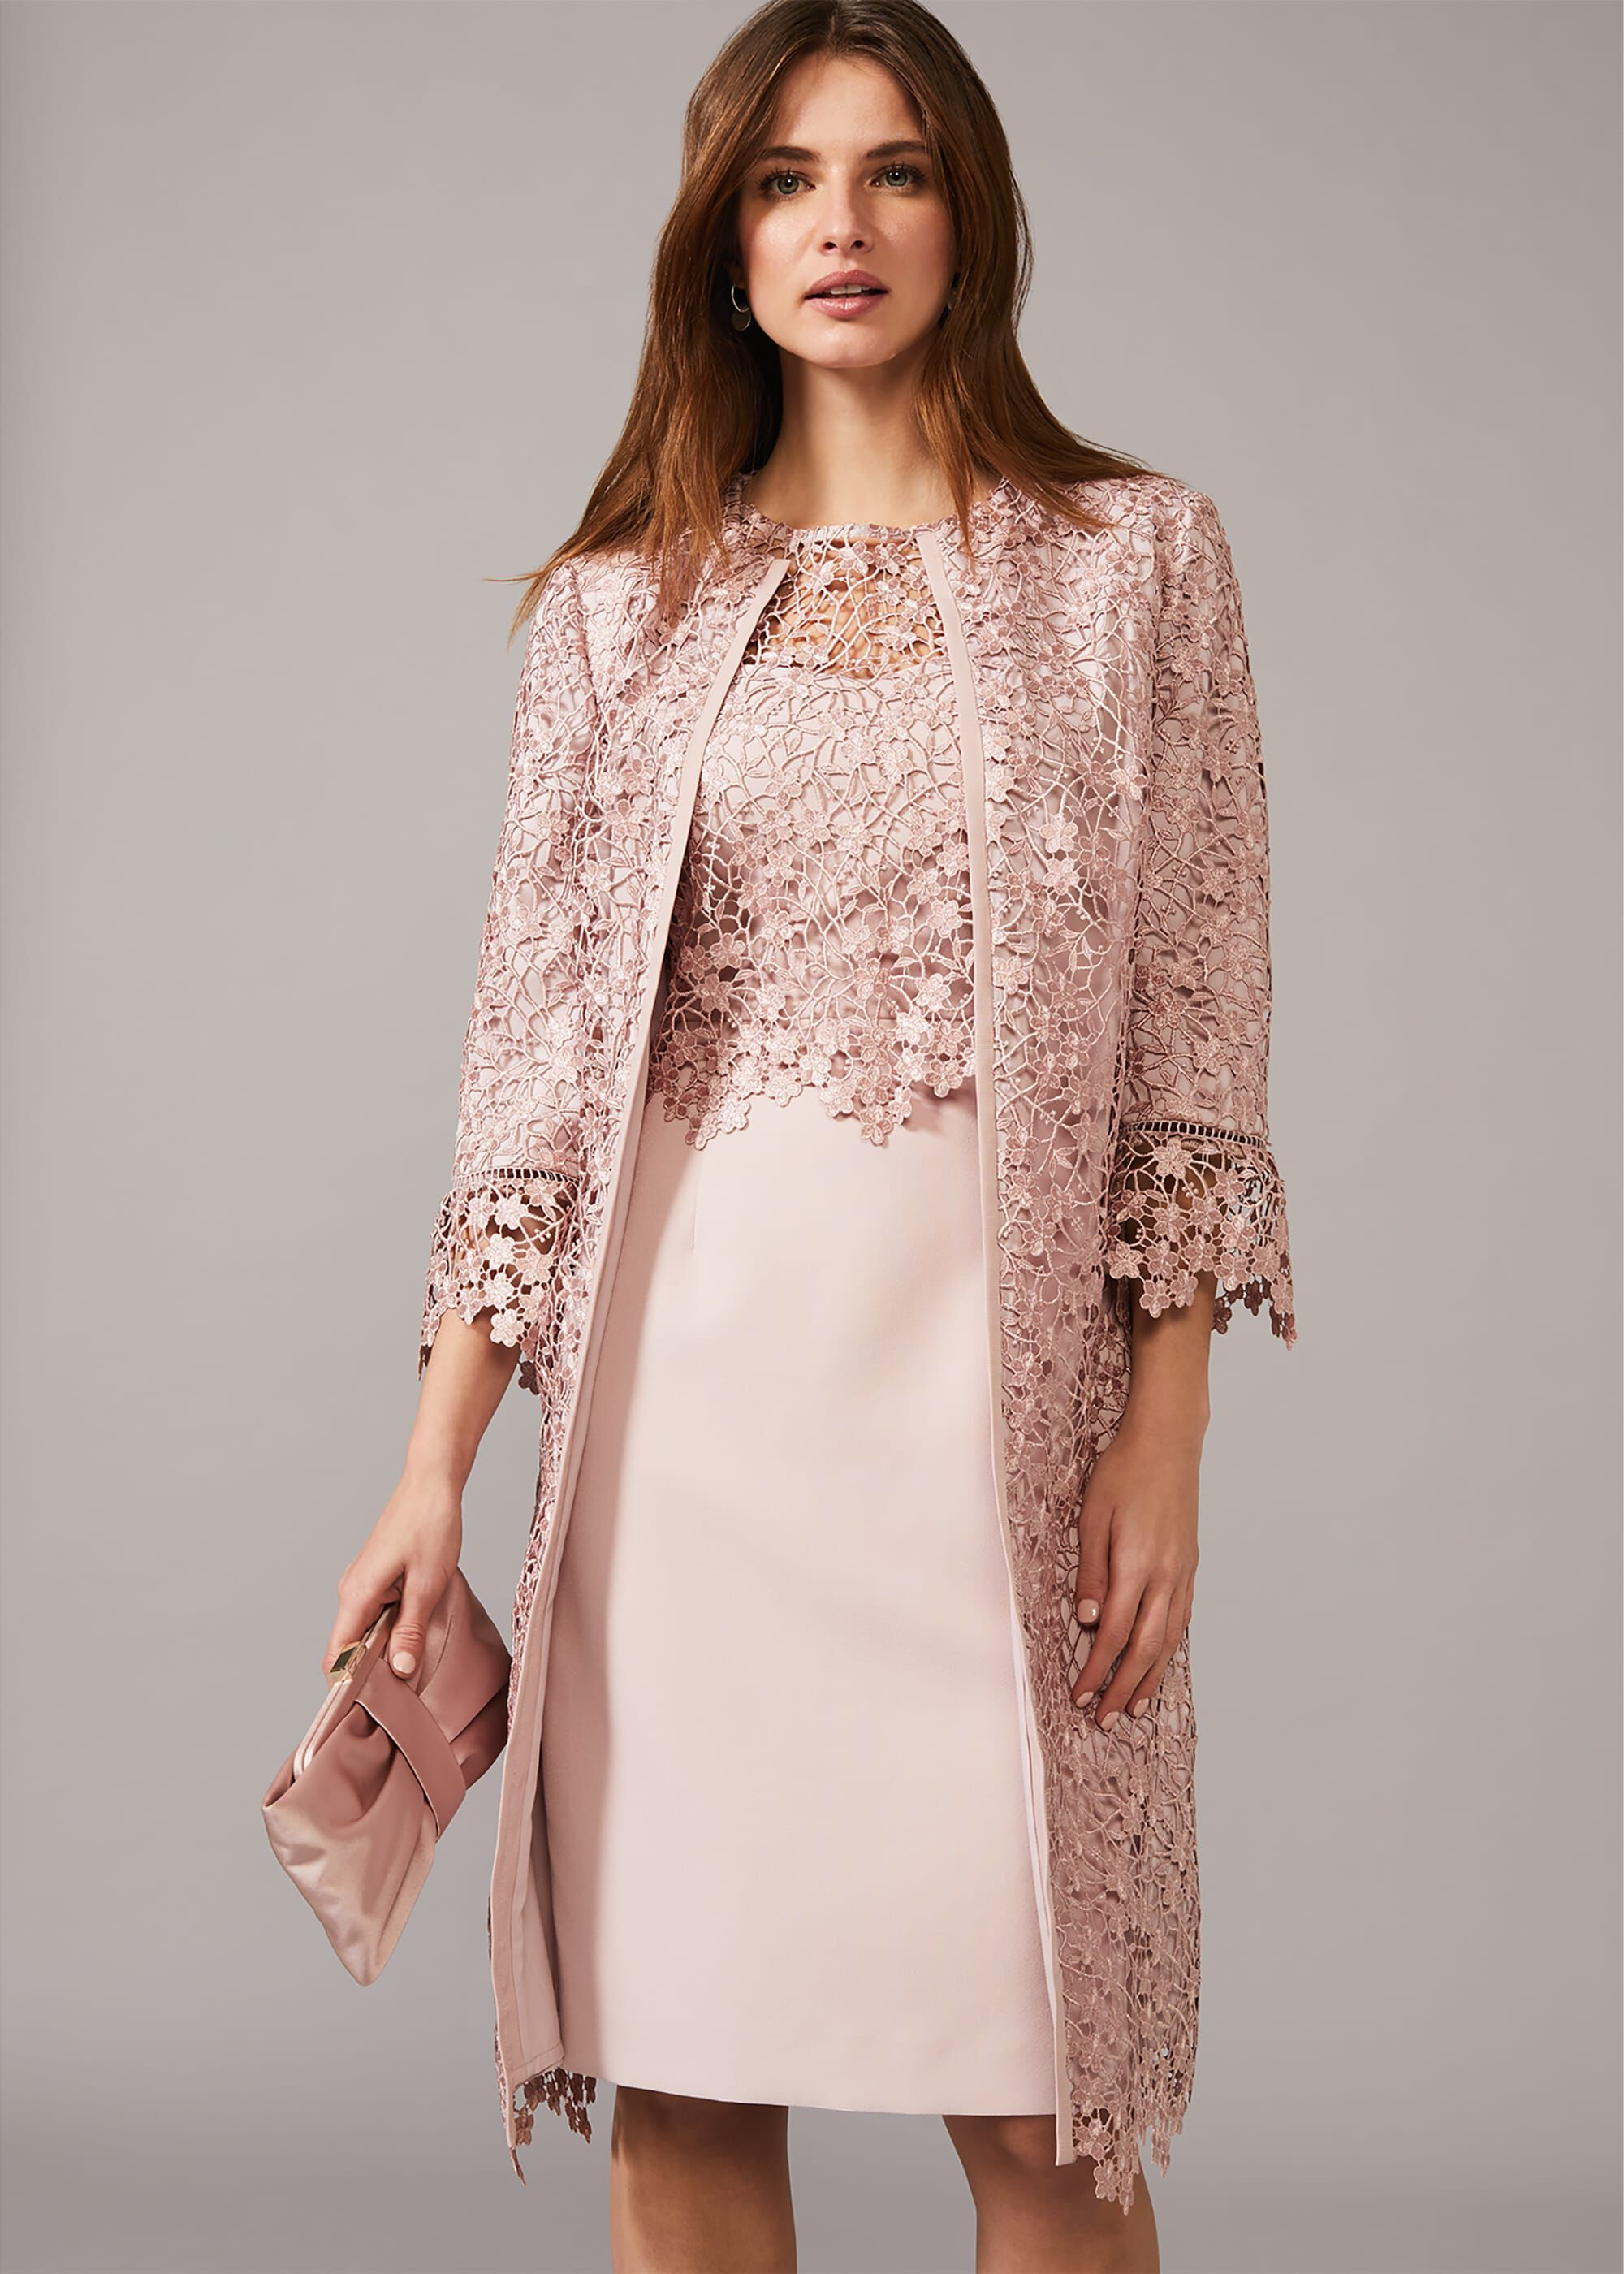 Phase Eight Mariposa Lace Coat, Pink